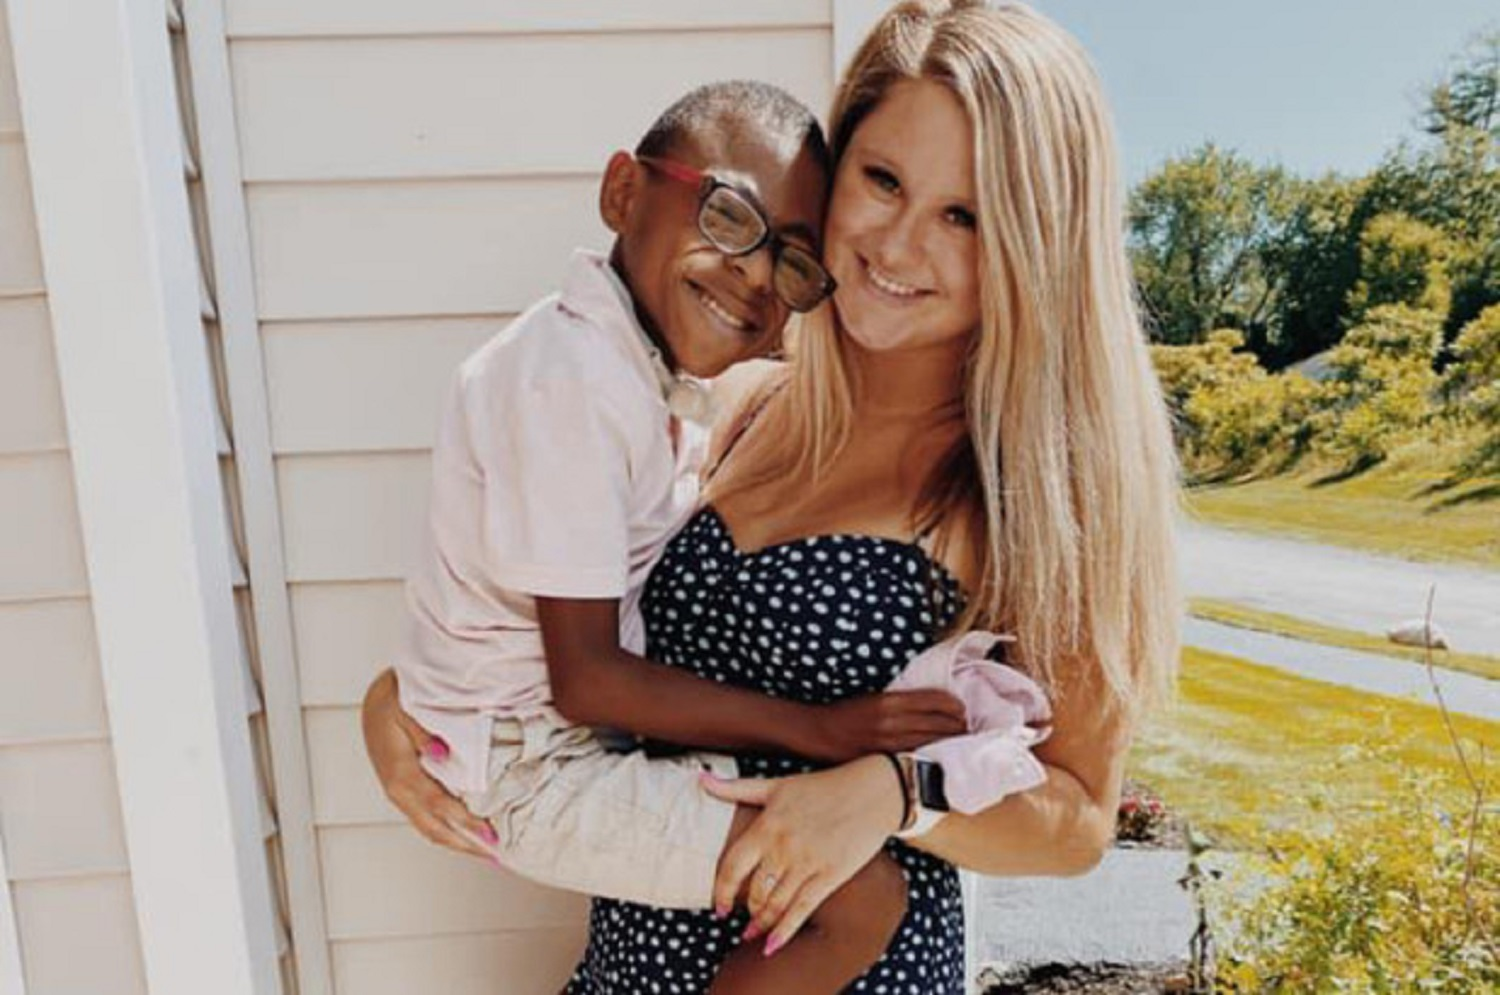 New York nurse adopts special need boy she cared for since birth